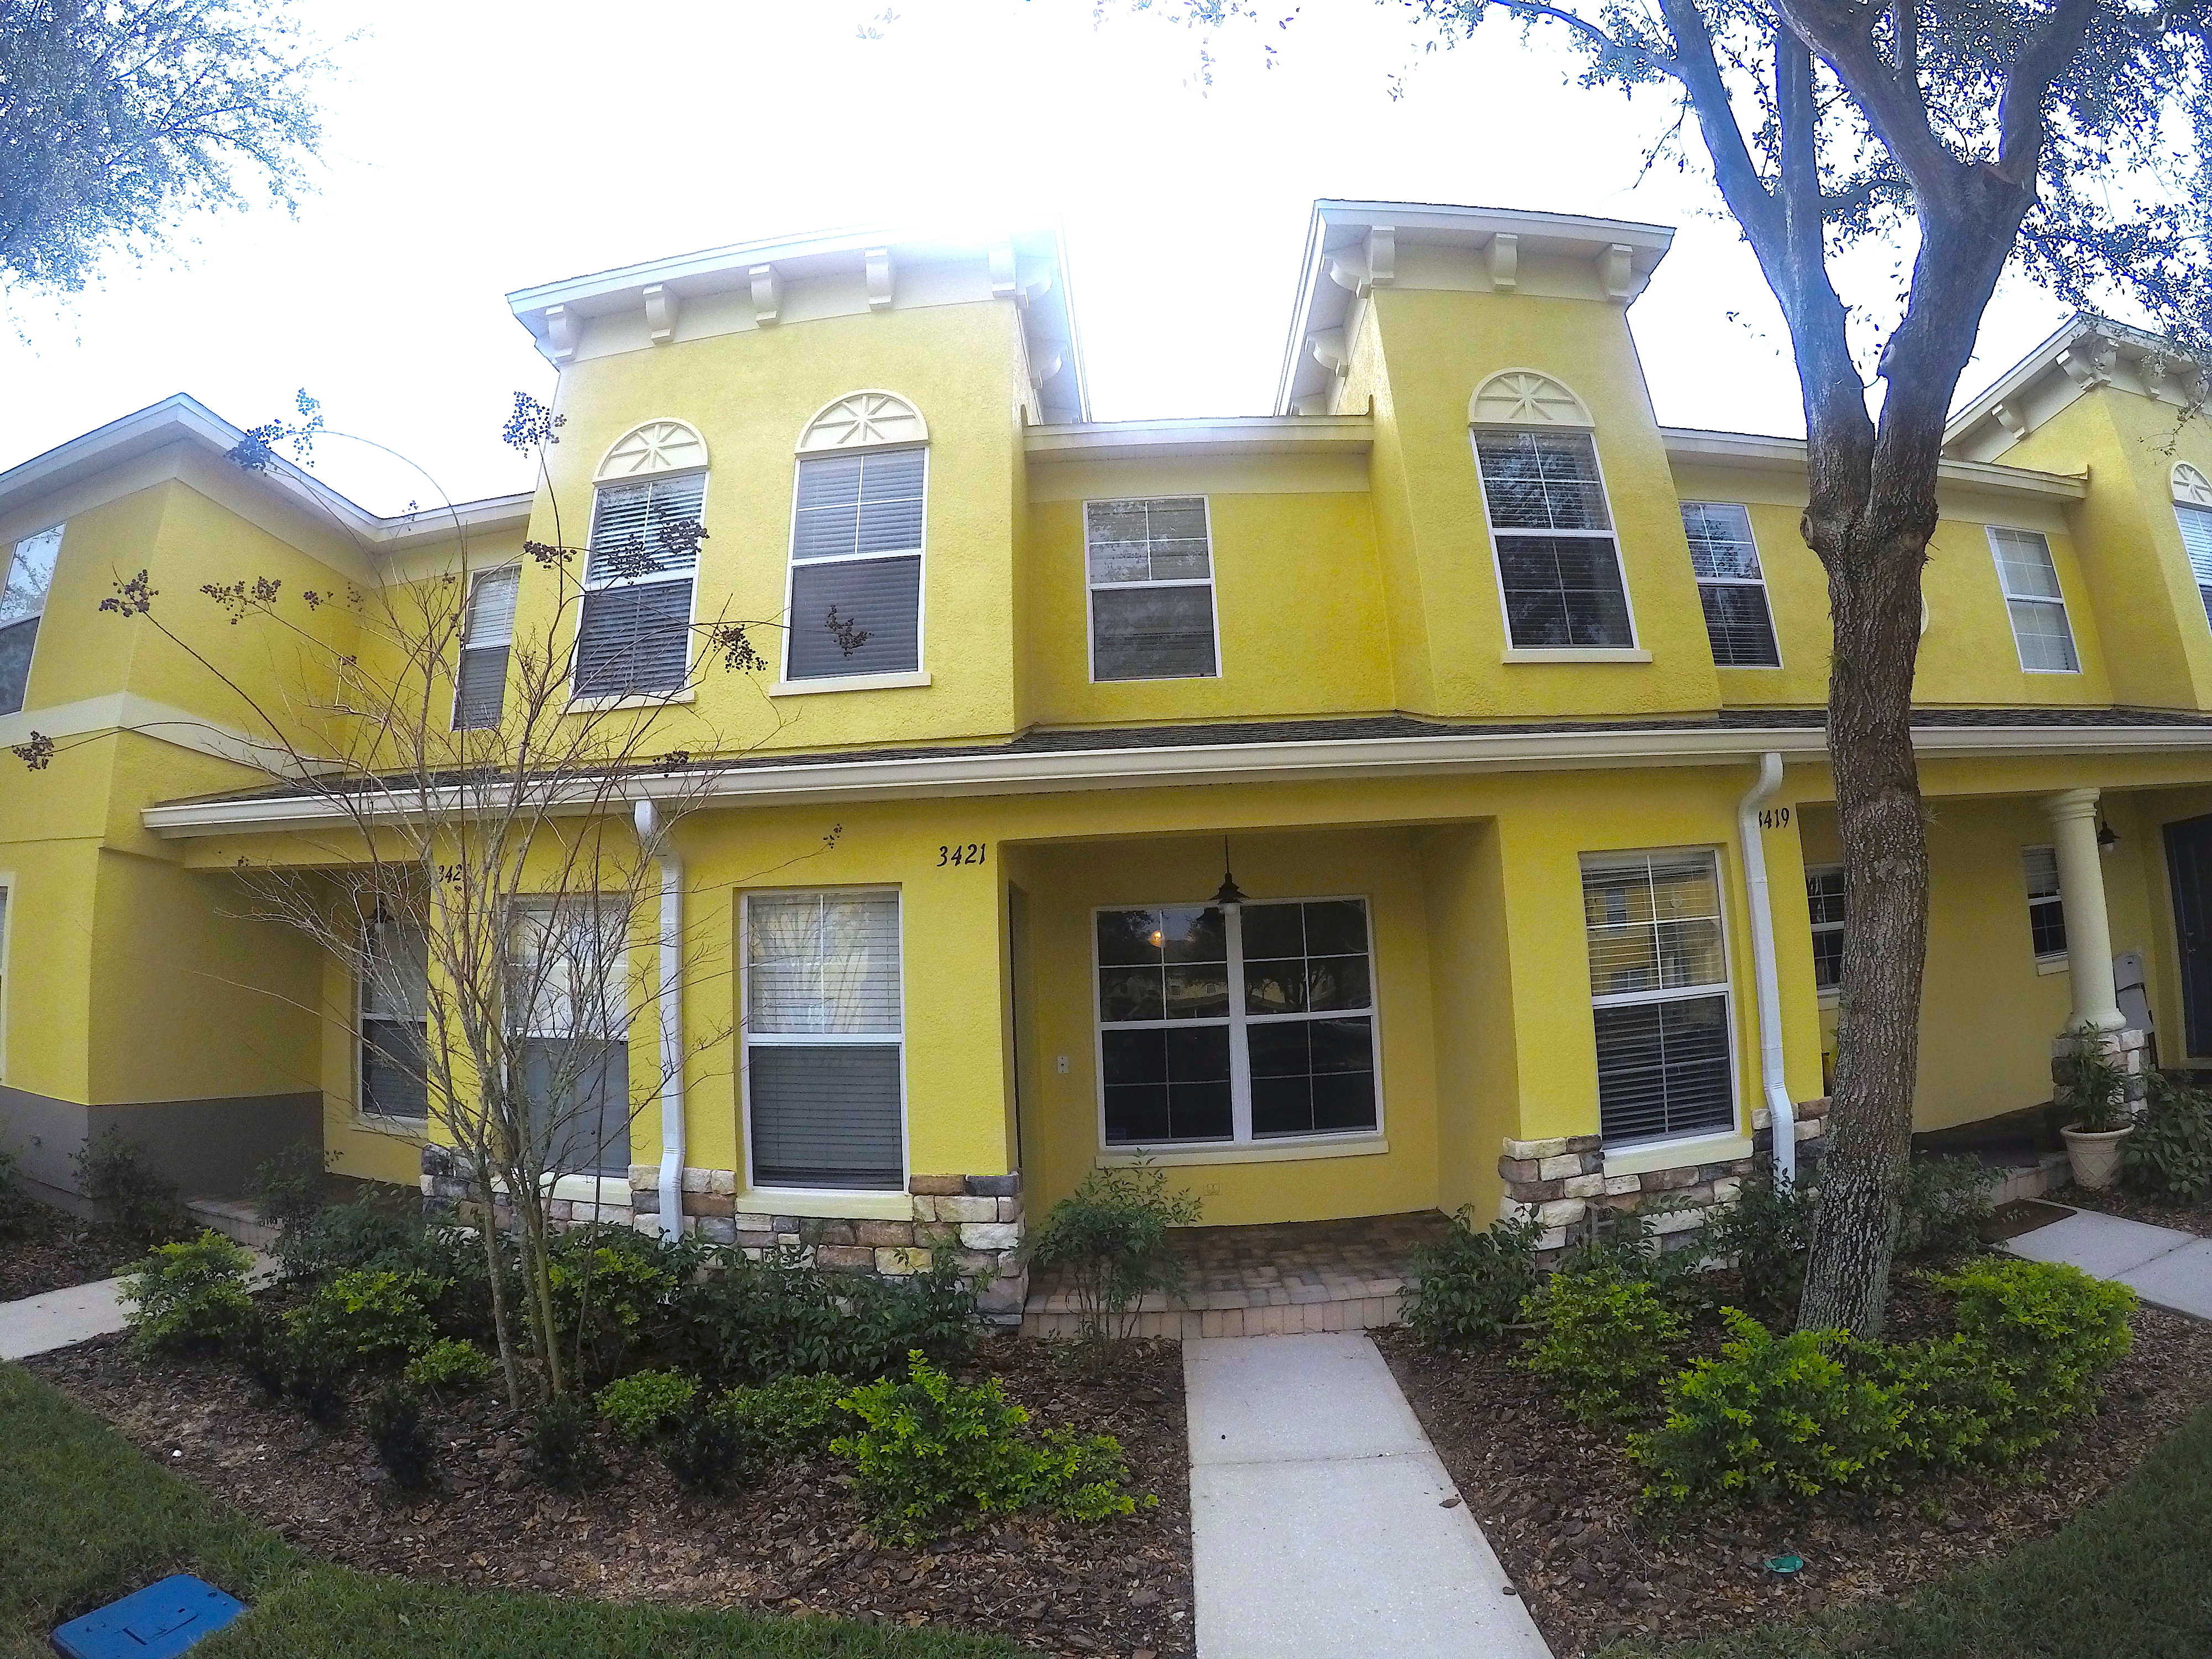 Apartment for Rent in Valrico